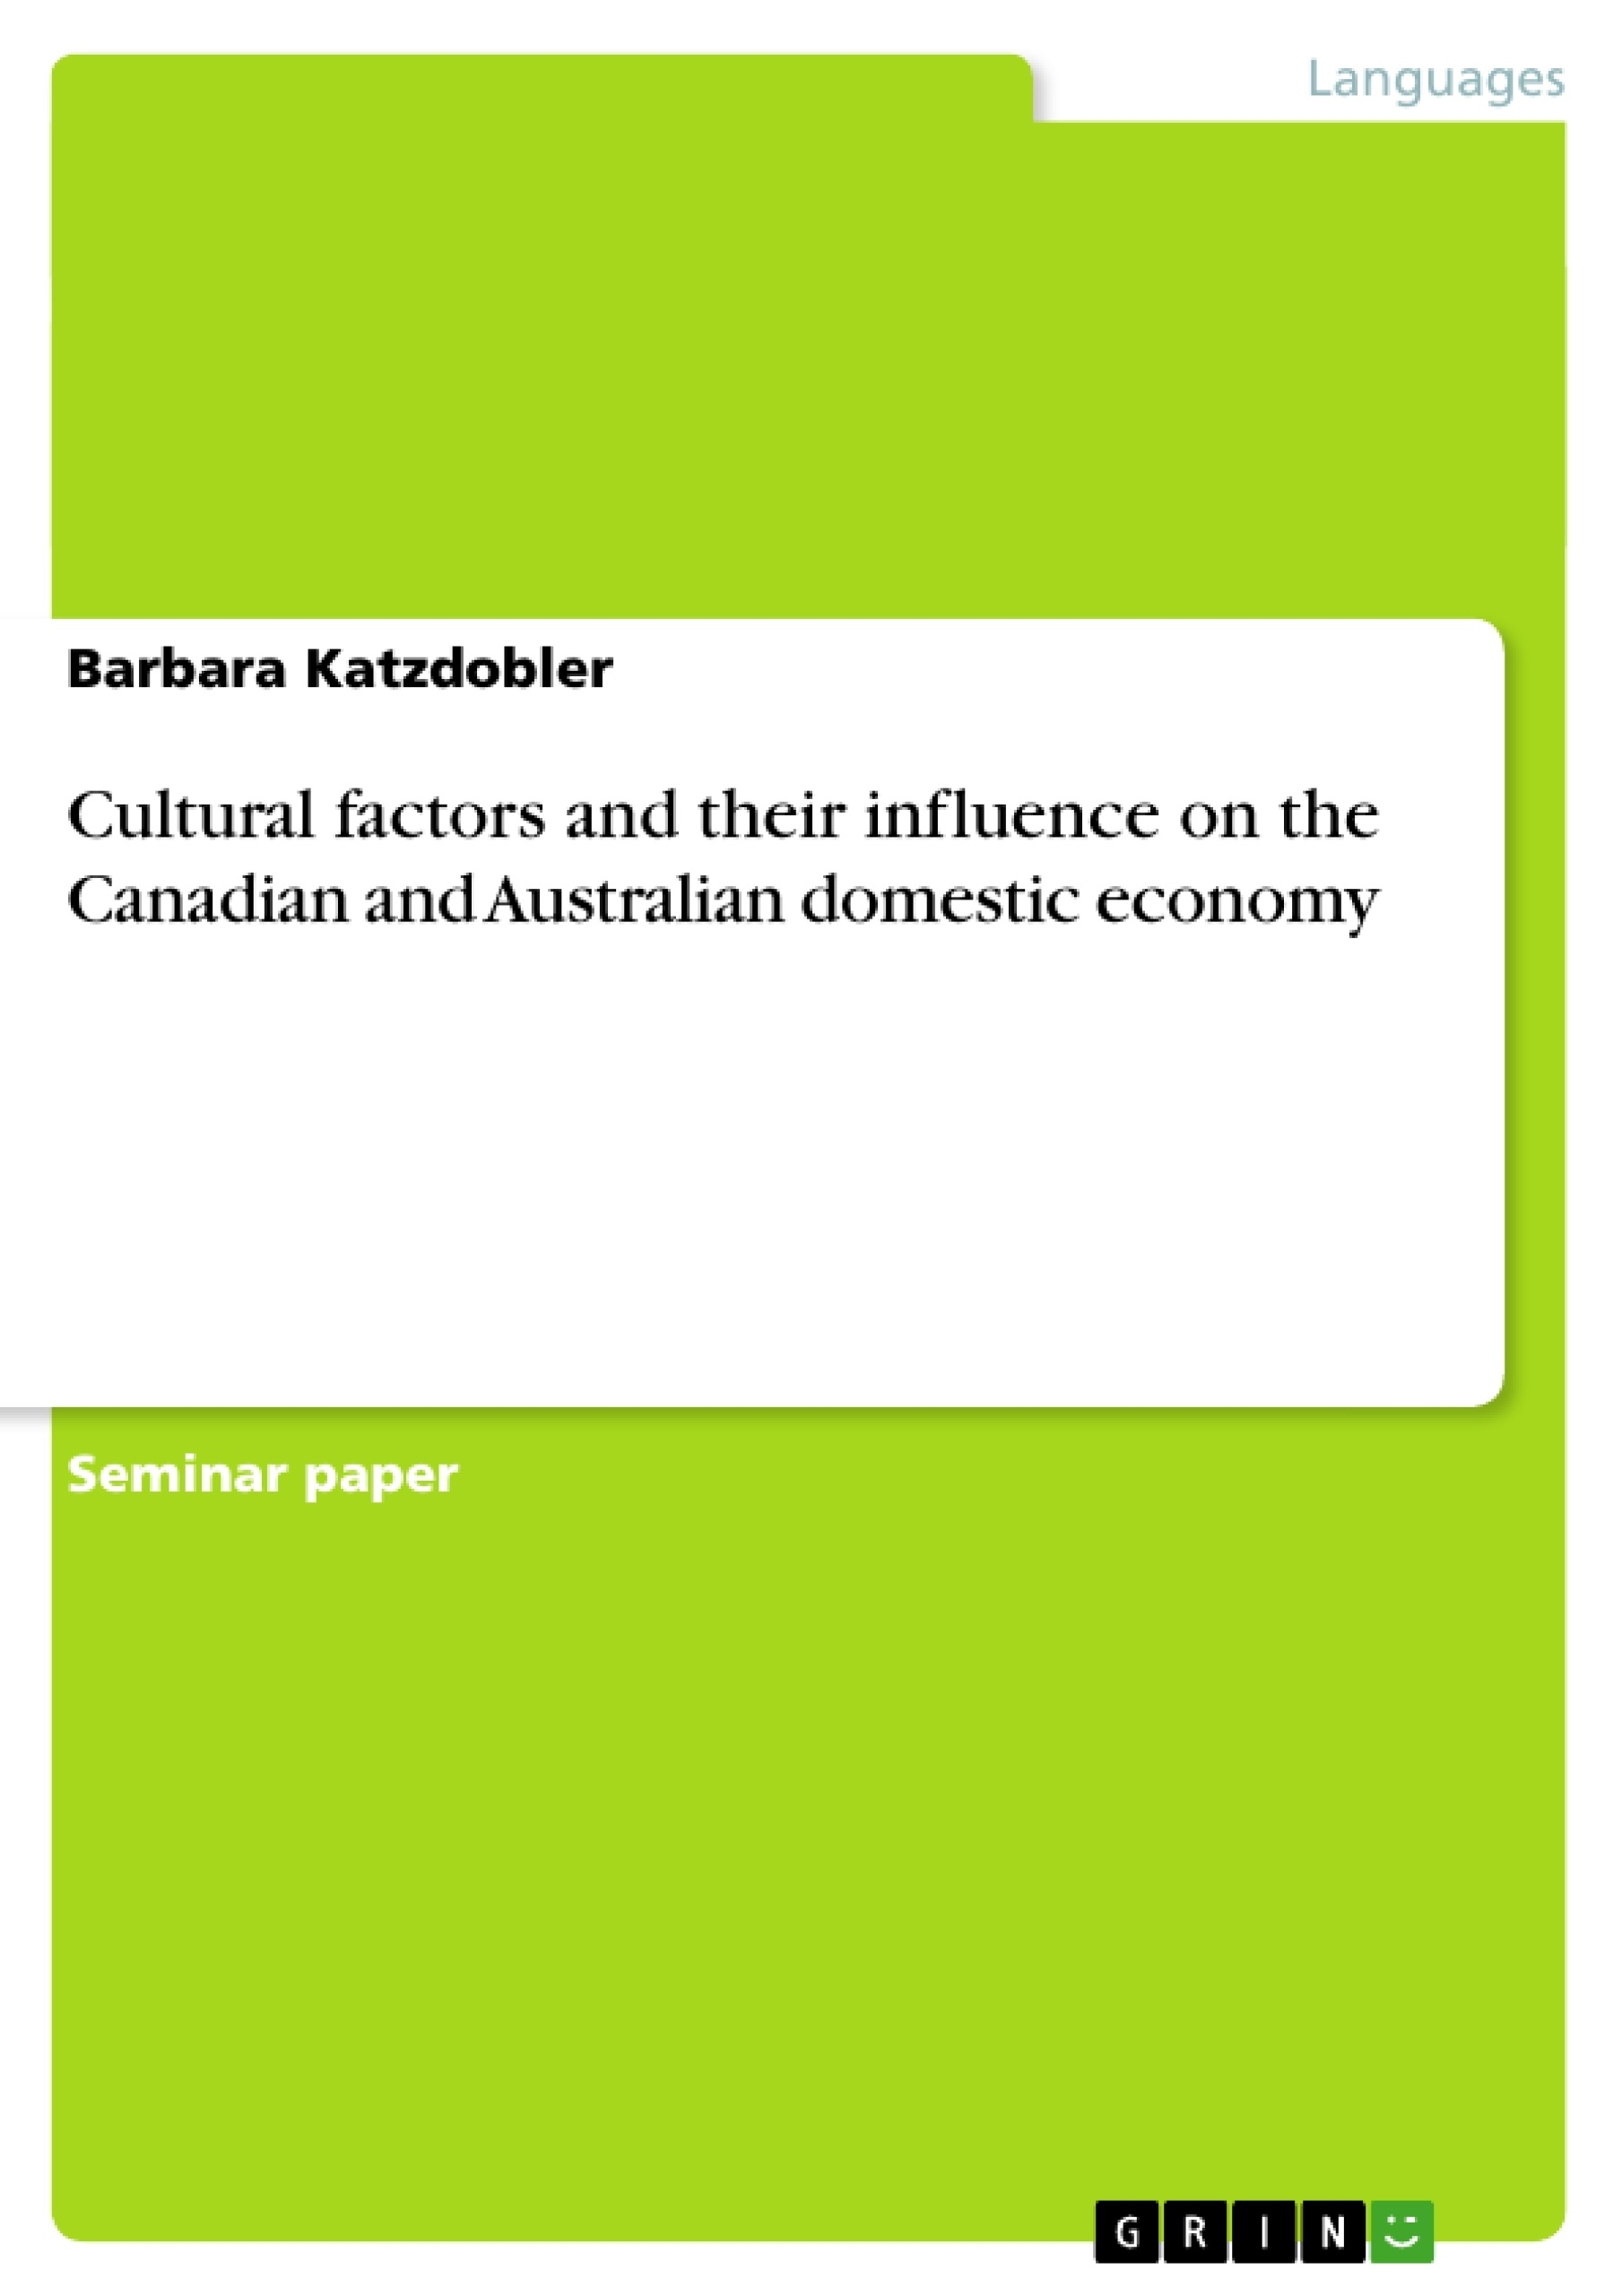 Title: Cultural factors and their influence on the Canadian and Australian domestic economy